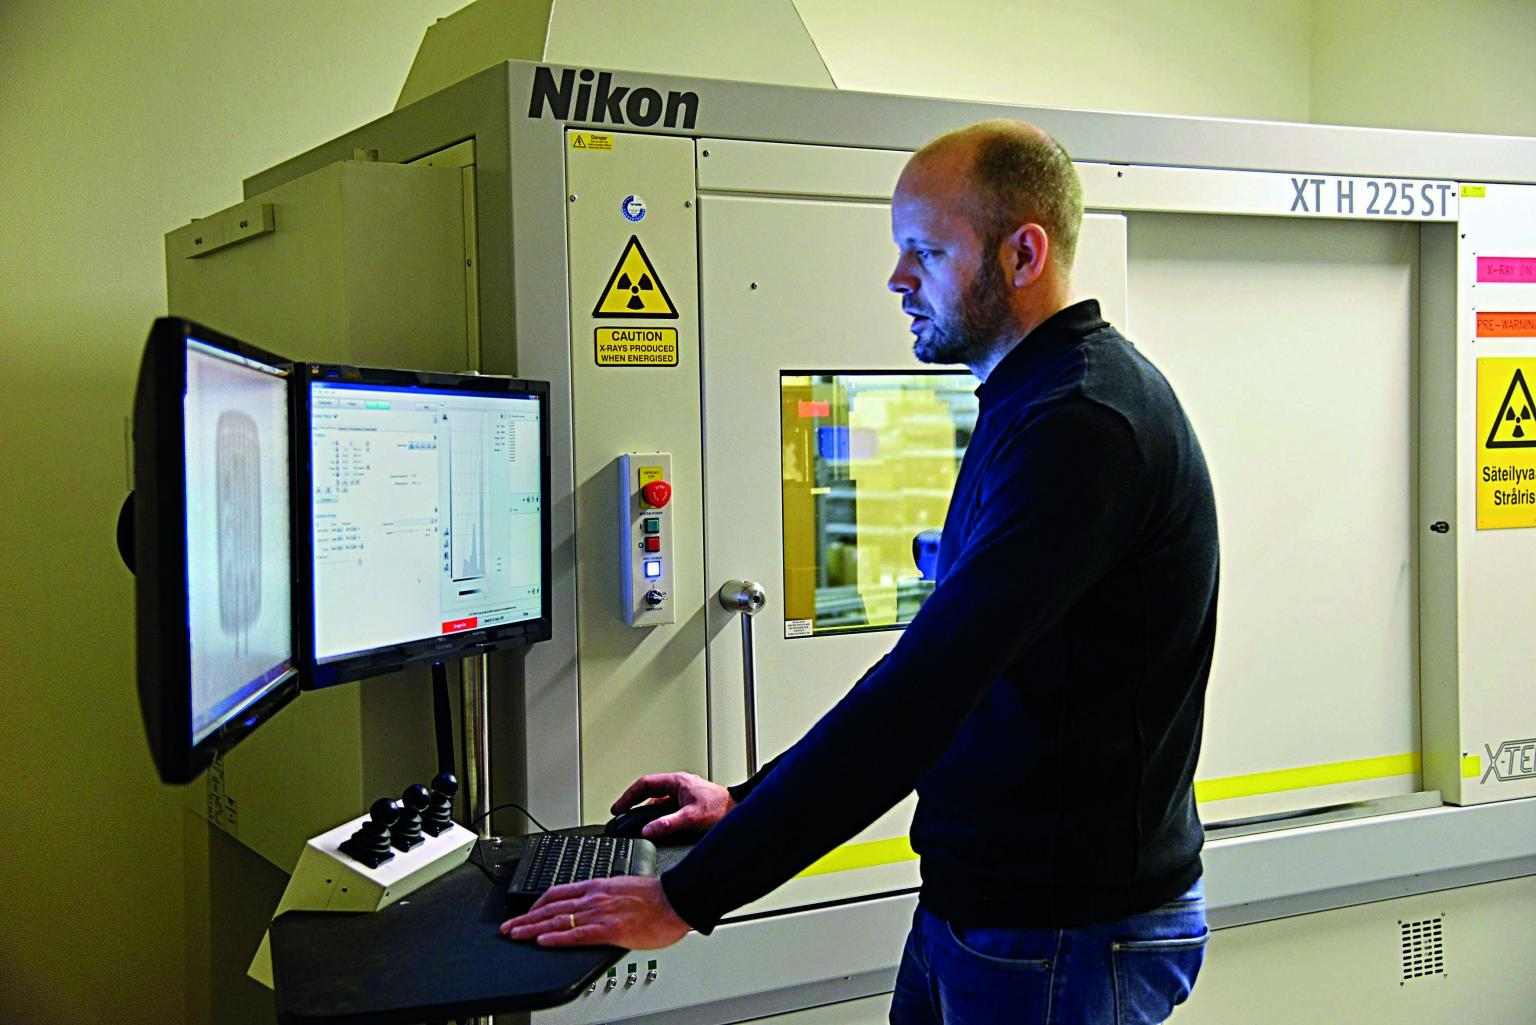 Test Engineer Carl-Anton Manns operating the Nikon Metrology XT H 225 ST CT system at Nordic Lights